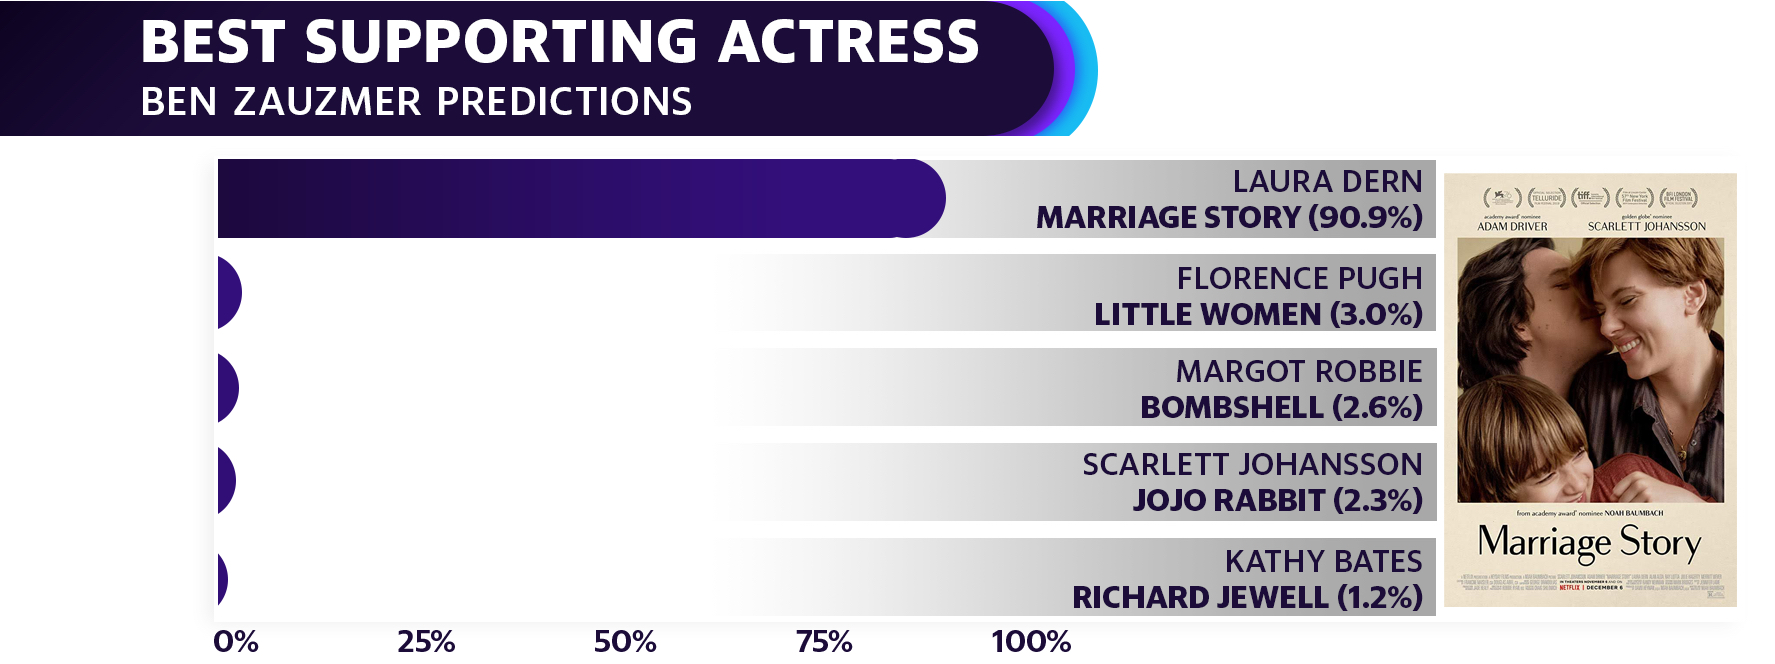 Laura Dern is favorited to win the Oscar for Best Supporting Actress for her role in Marriage Story, according to Zauzmer's model.